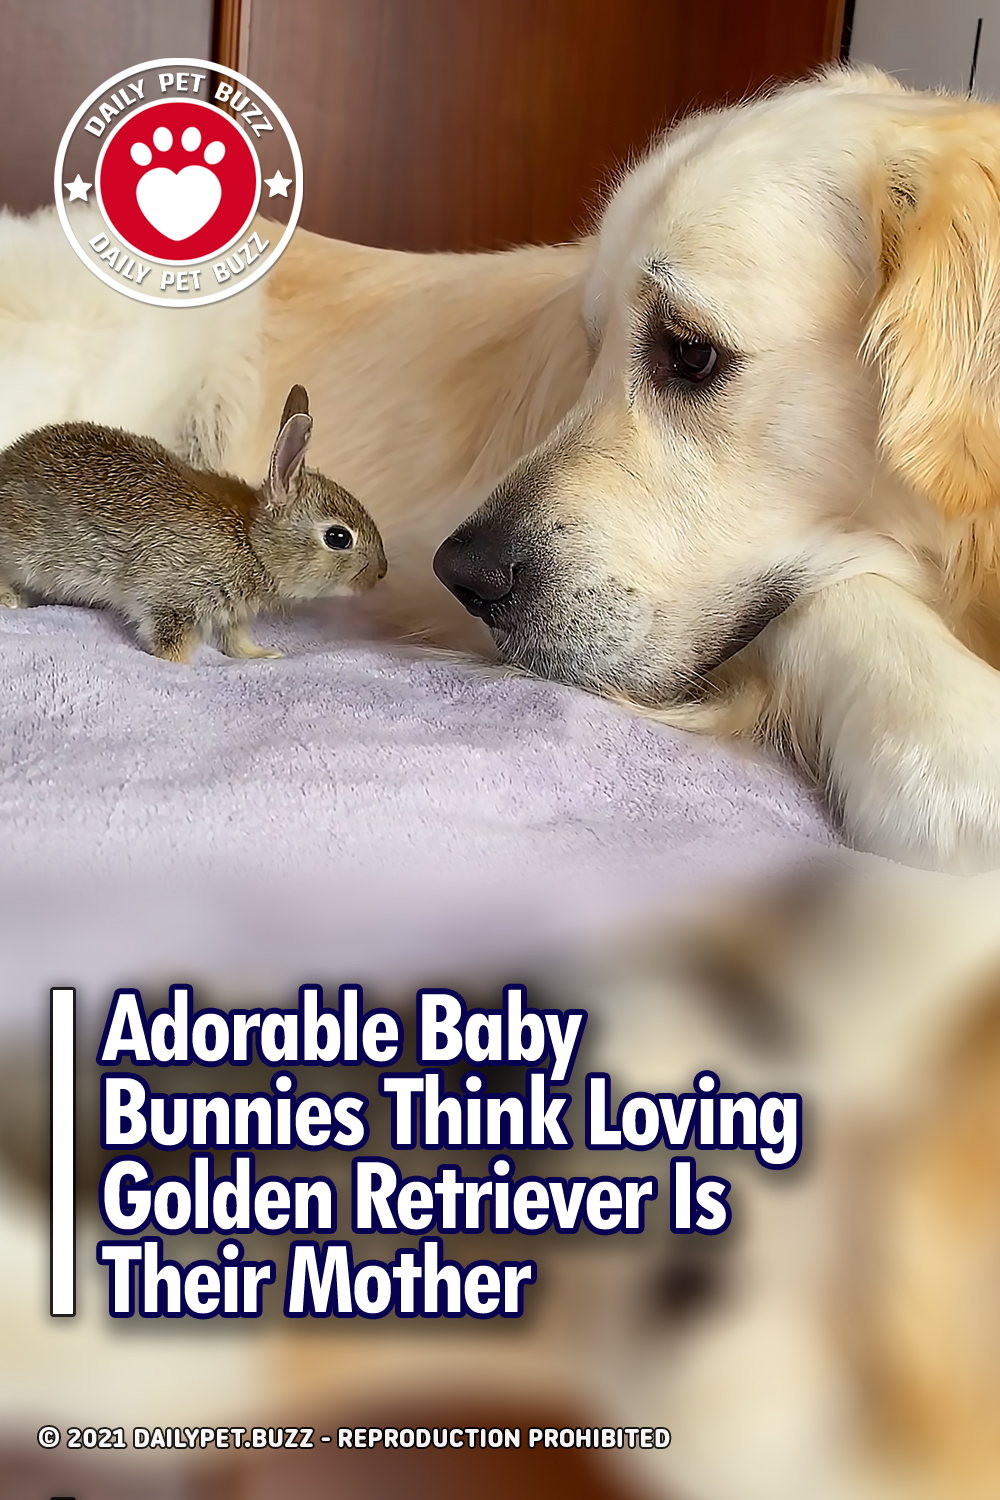 Adorable Baby Bunnies Think Loving Golden Retriever Is Their Mother